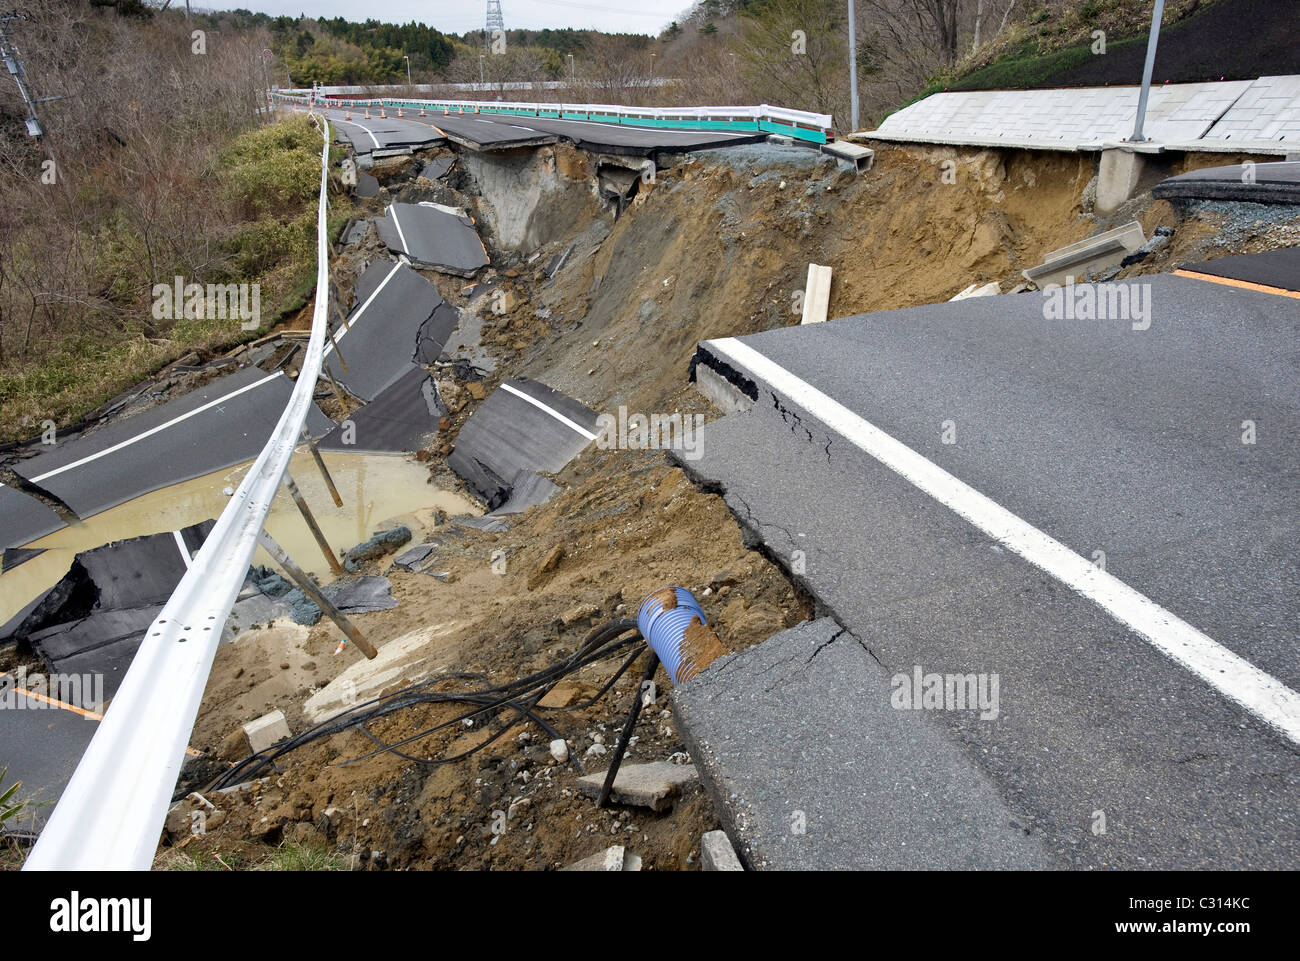 The road lies in pieces near the Fukushima No. 2 nuclear power plant in Tomioka Town Fukushima Prefecture, Japan - Stock Image